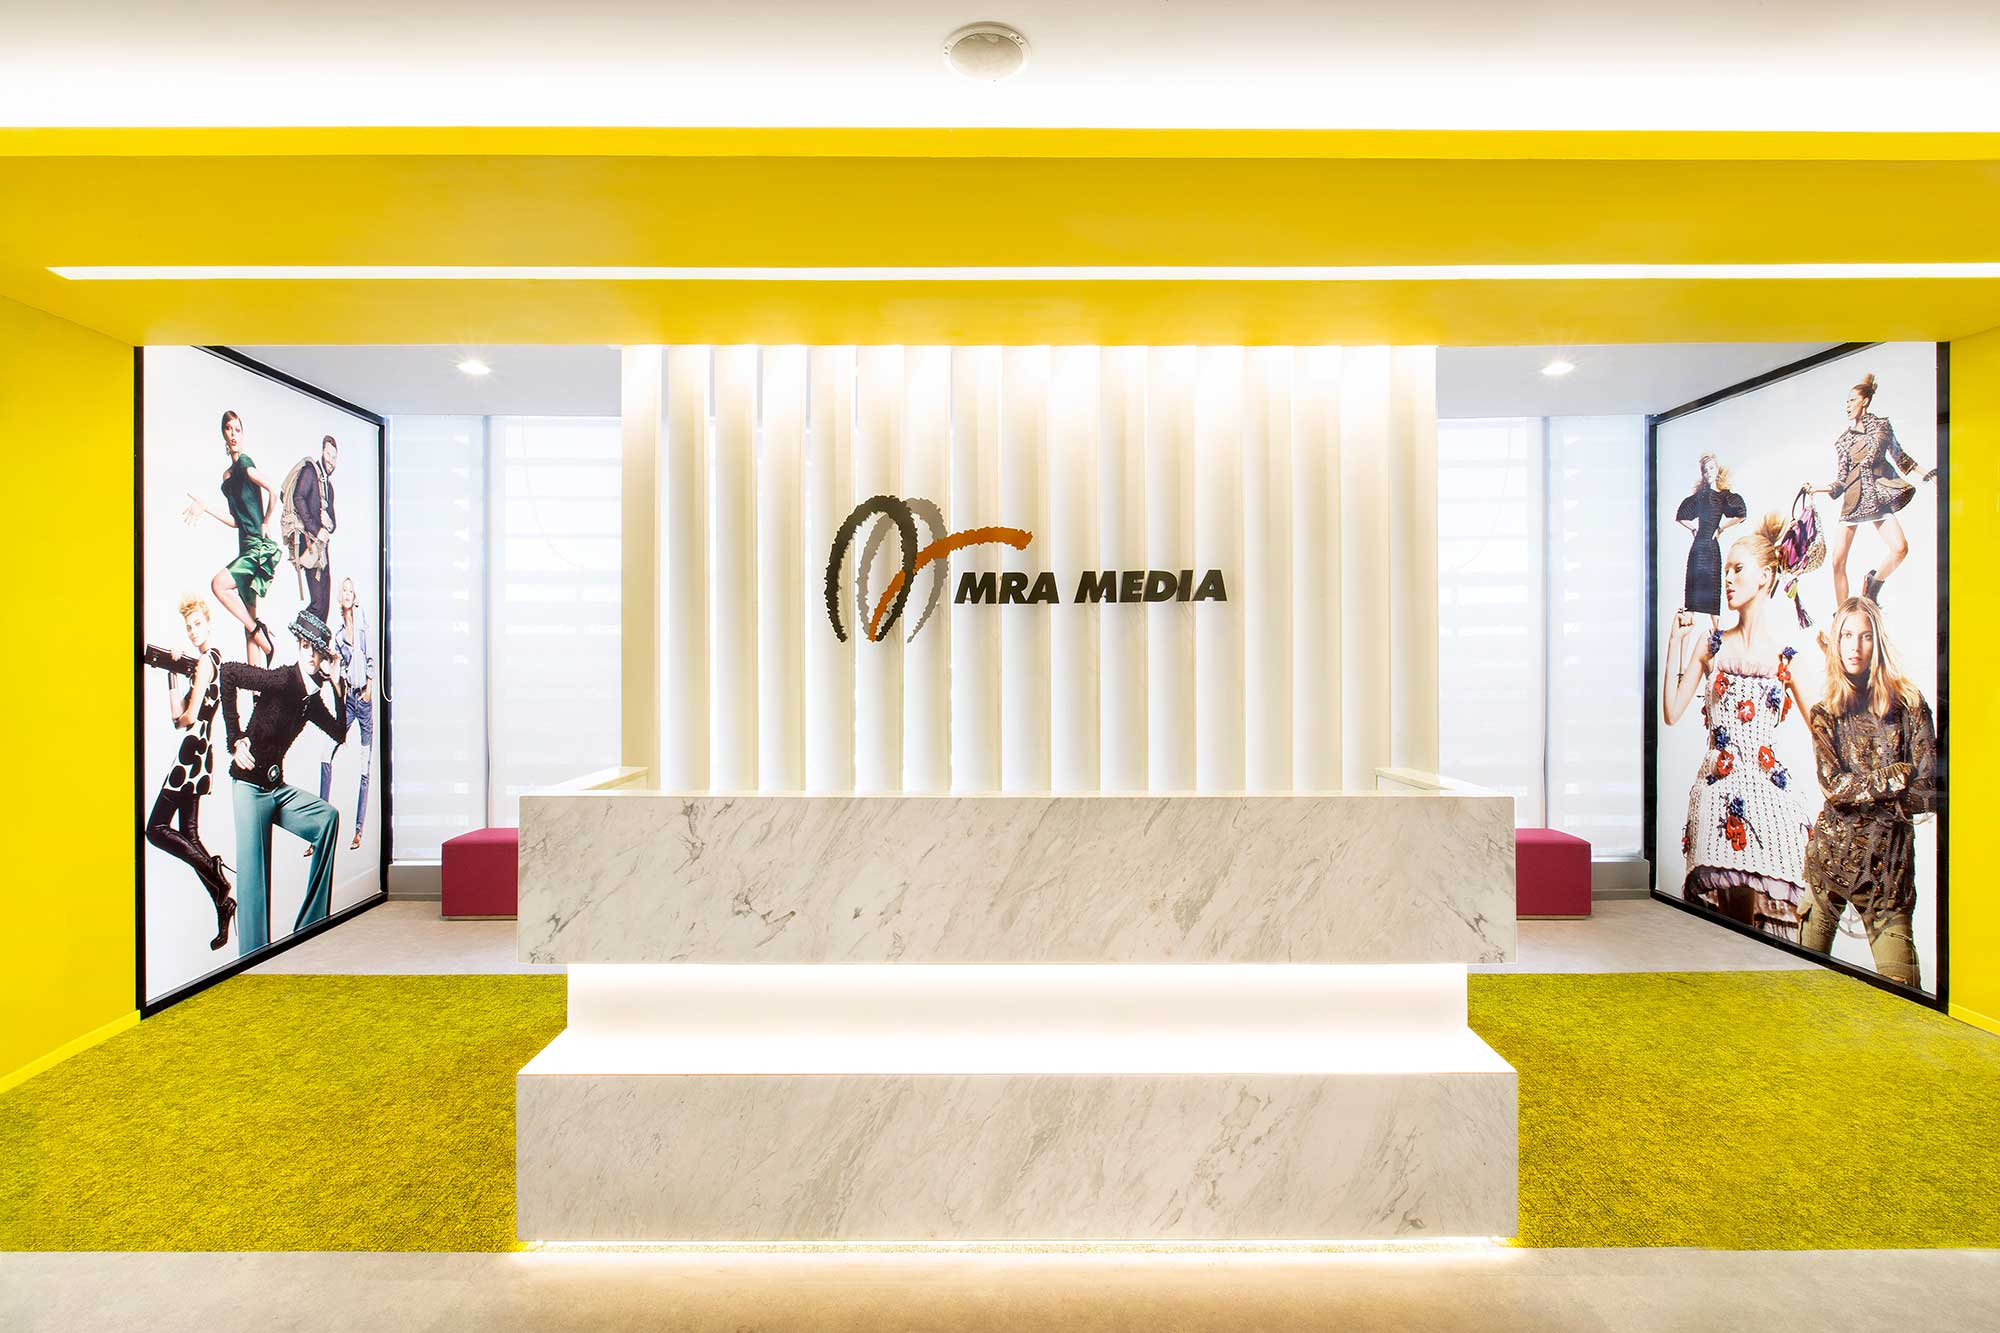 The bright and stylish reception area for MRA's new office. Interior Design + Build by AVIP.